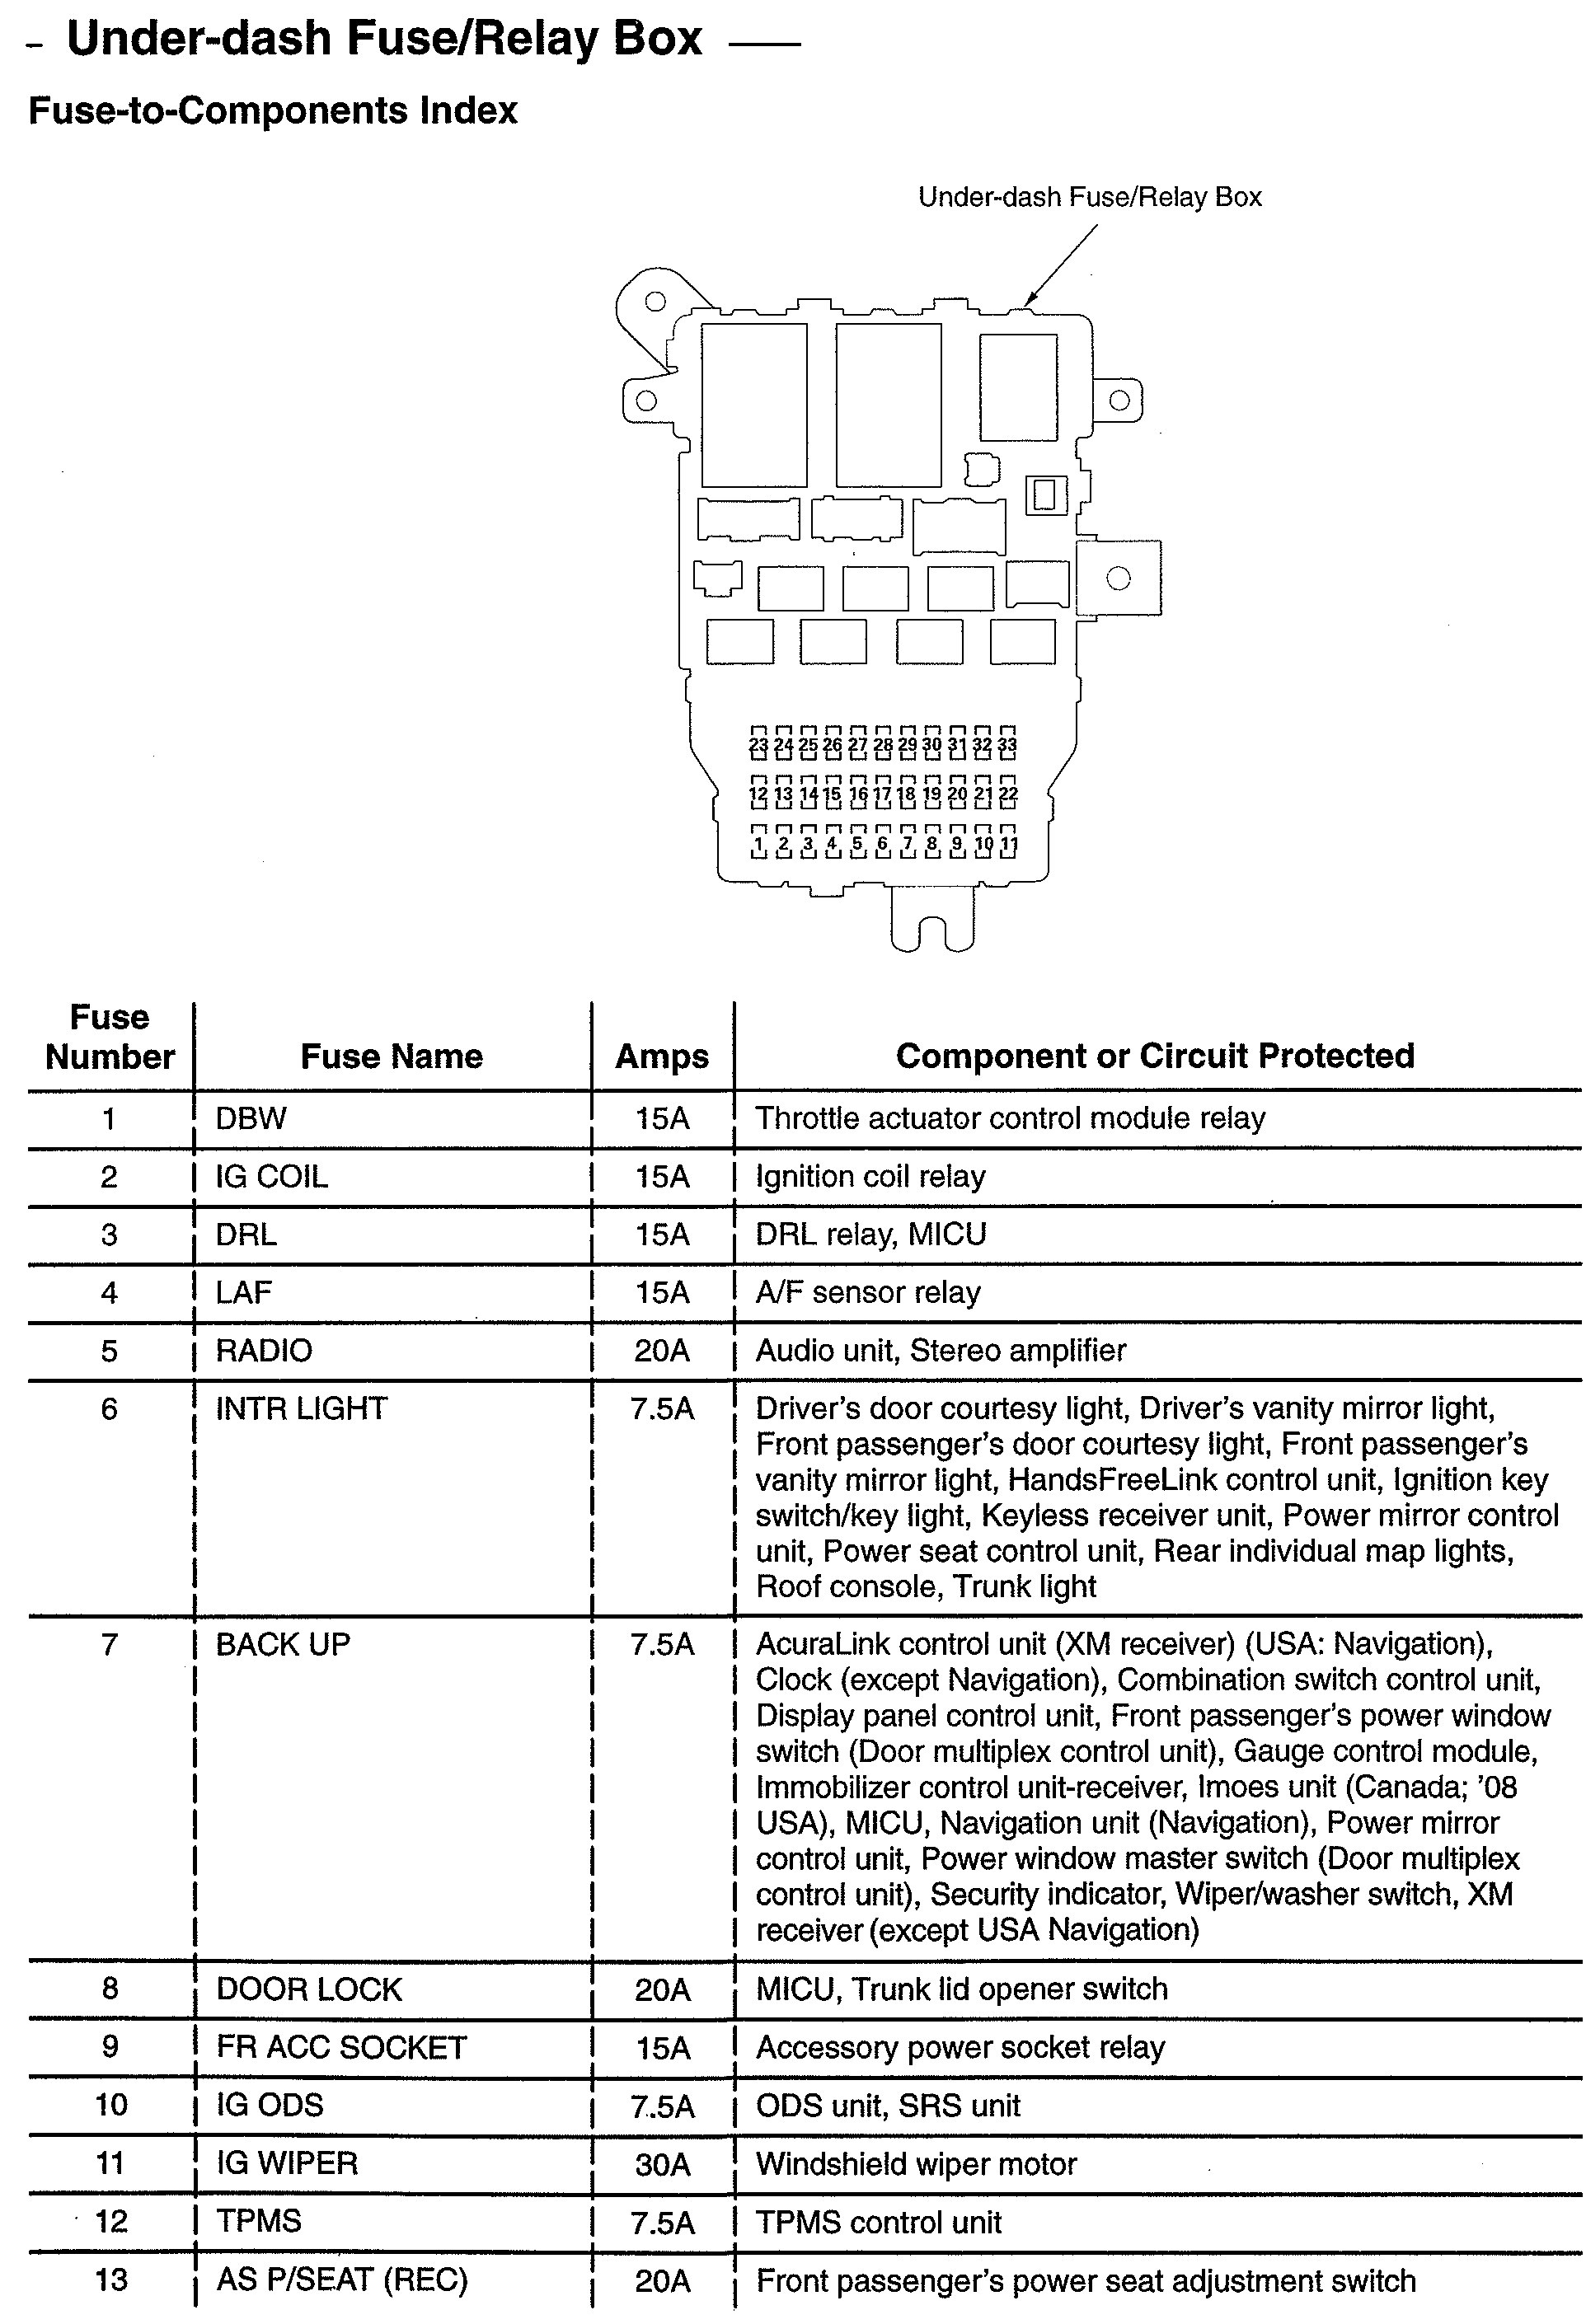 Acura Tl Diagram Smart Wiring Diagrams 2005 Jaguar S Type Fuse Box Rl Rh 107 191